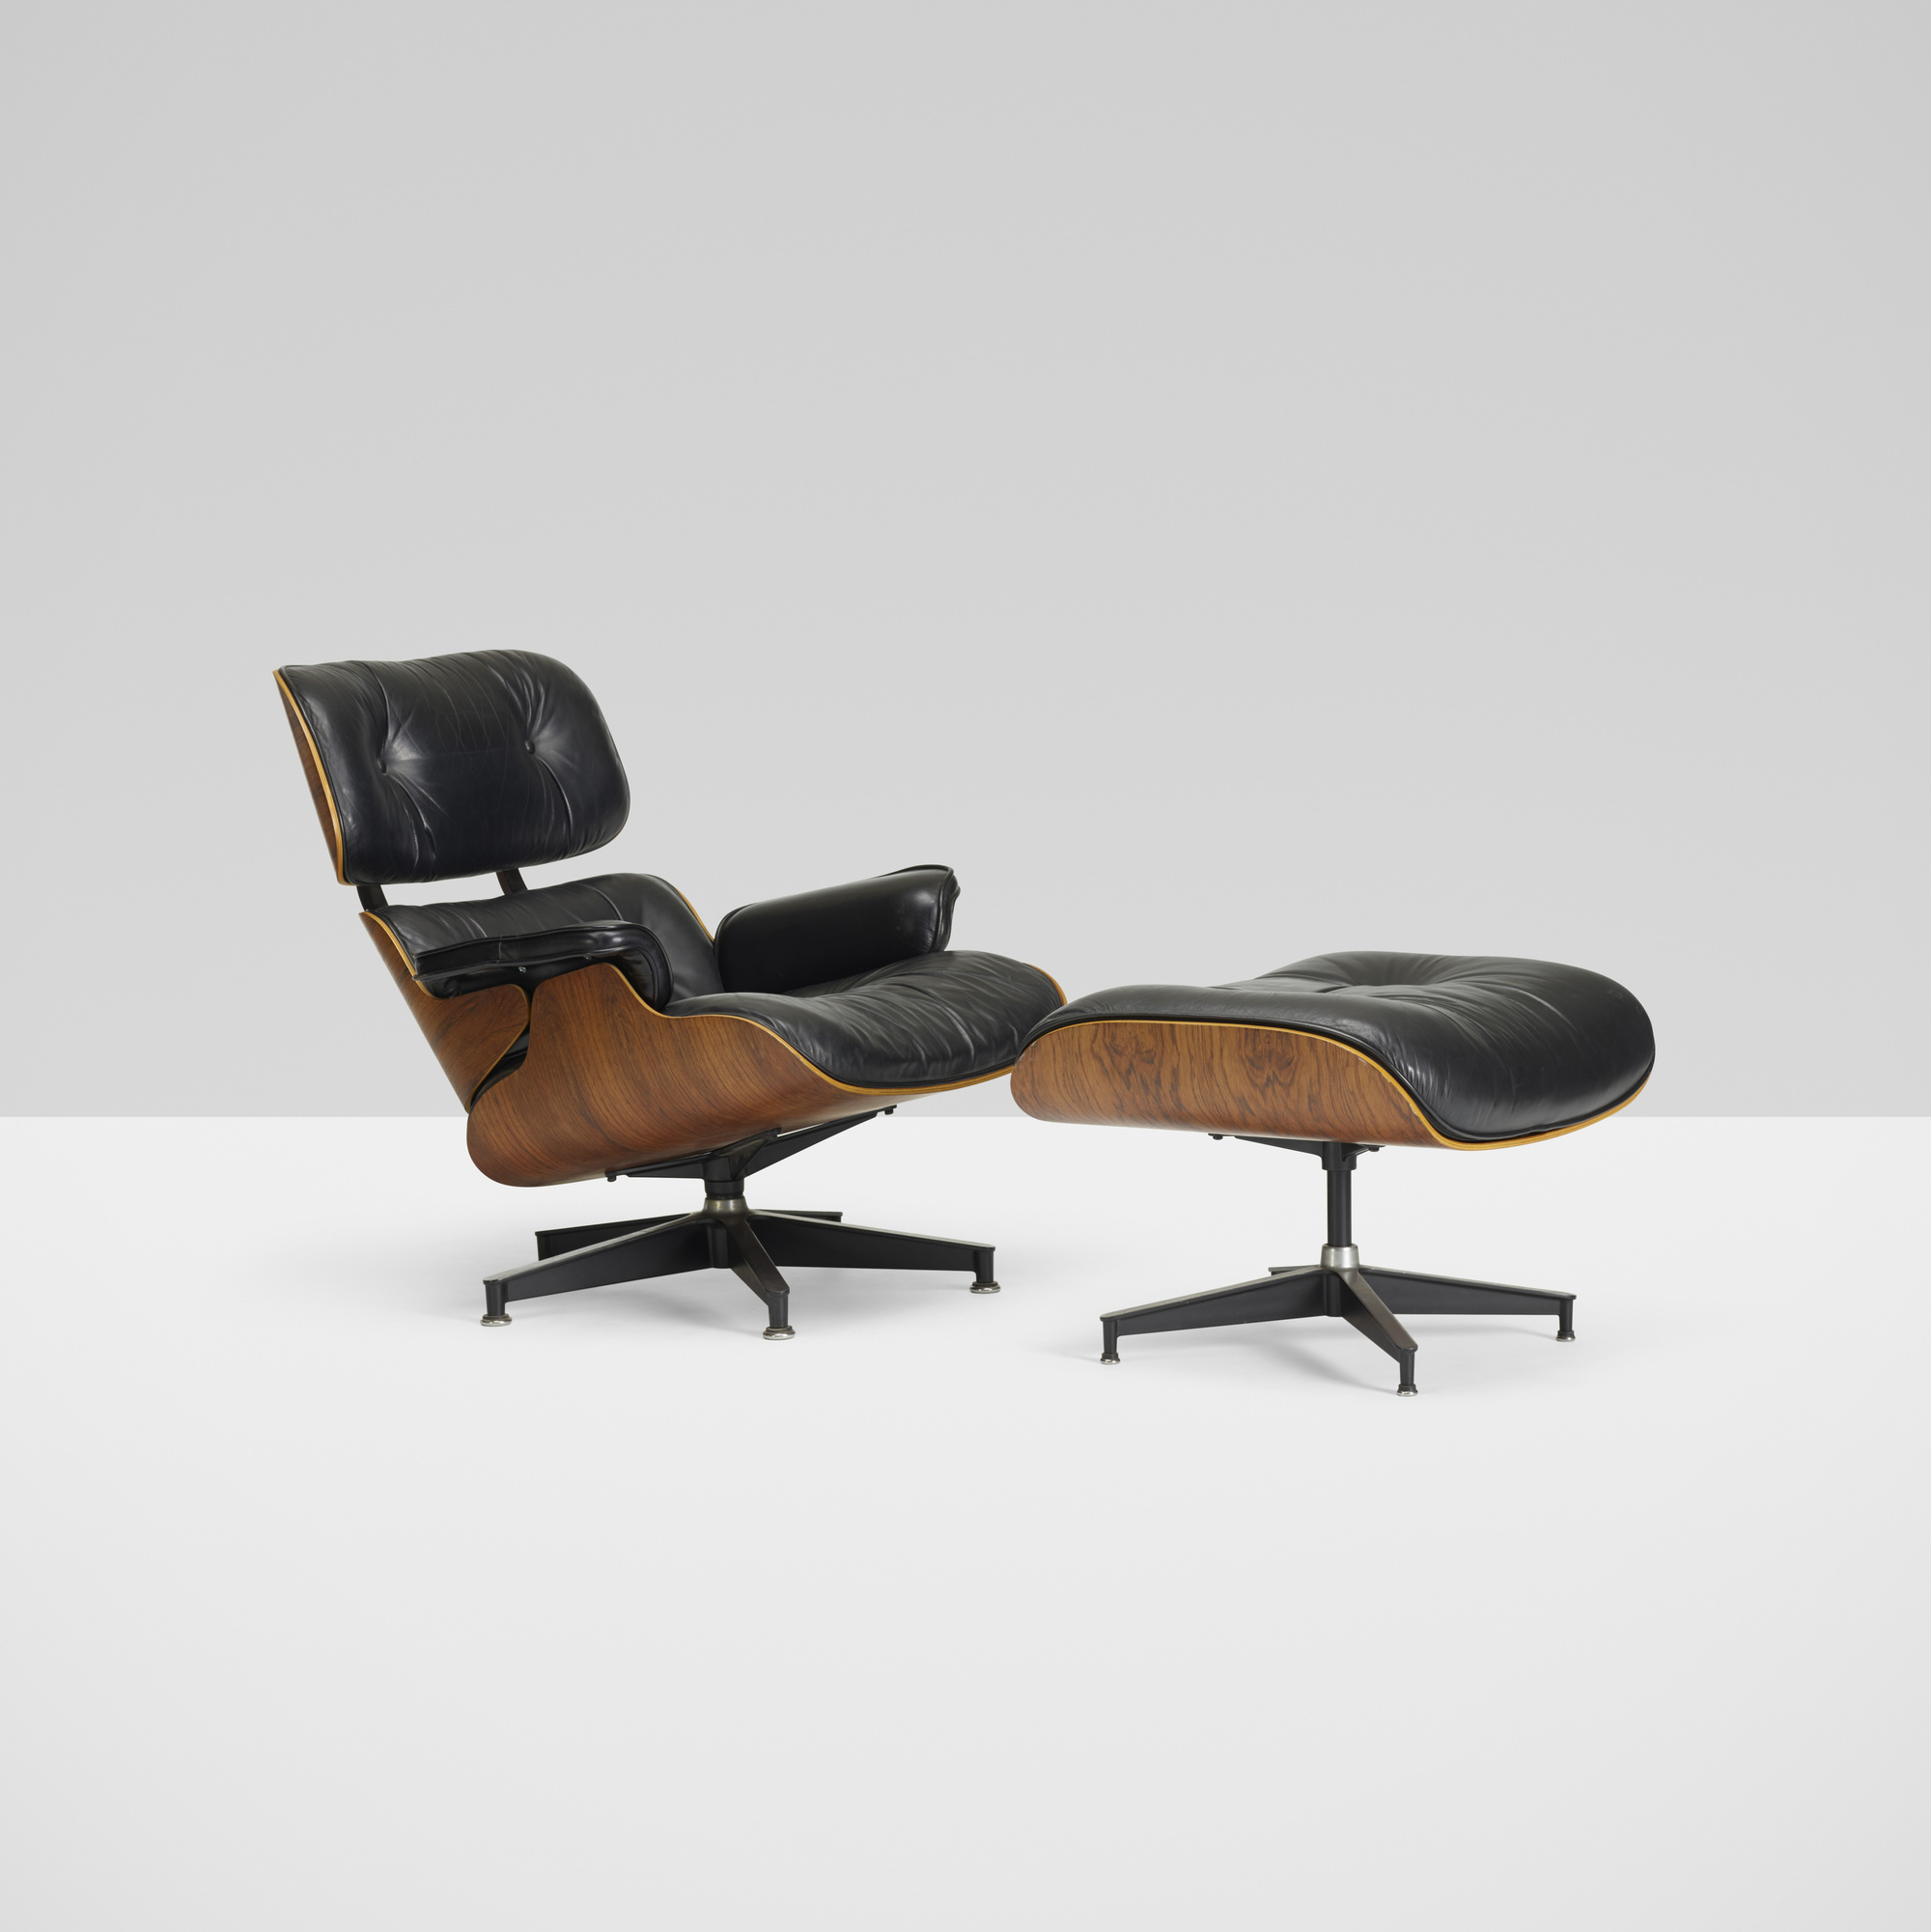 137 Charles And Ray Eames Lounge Chair Model 670 And